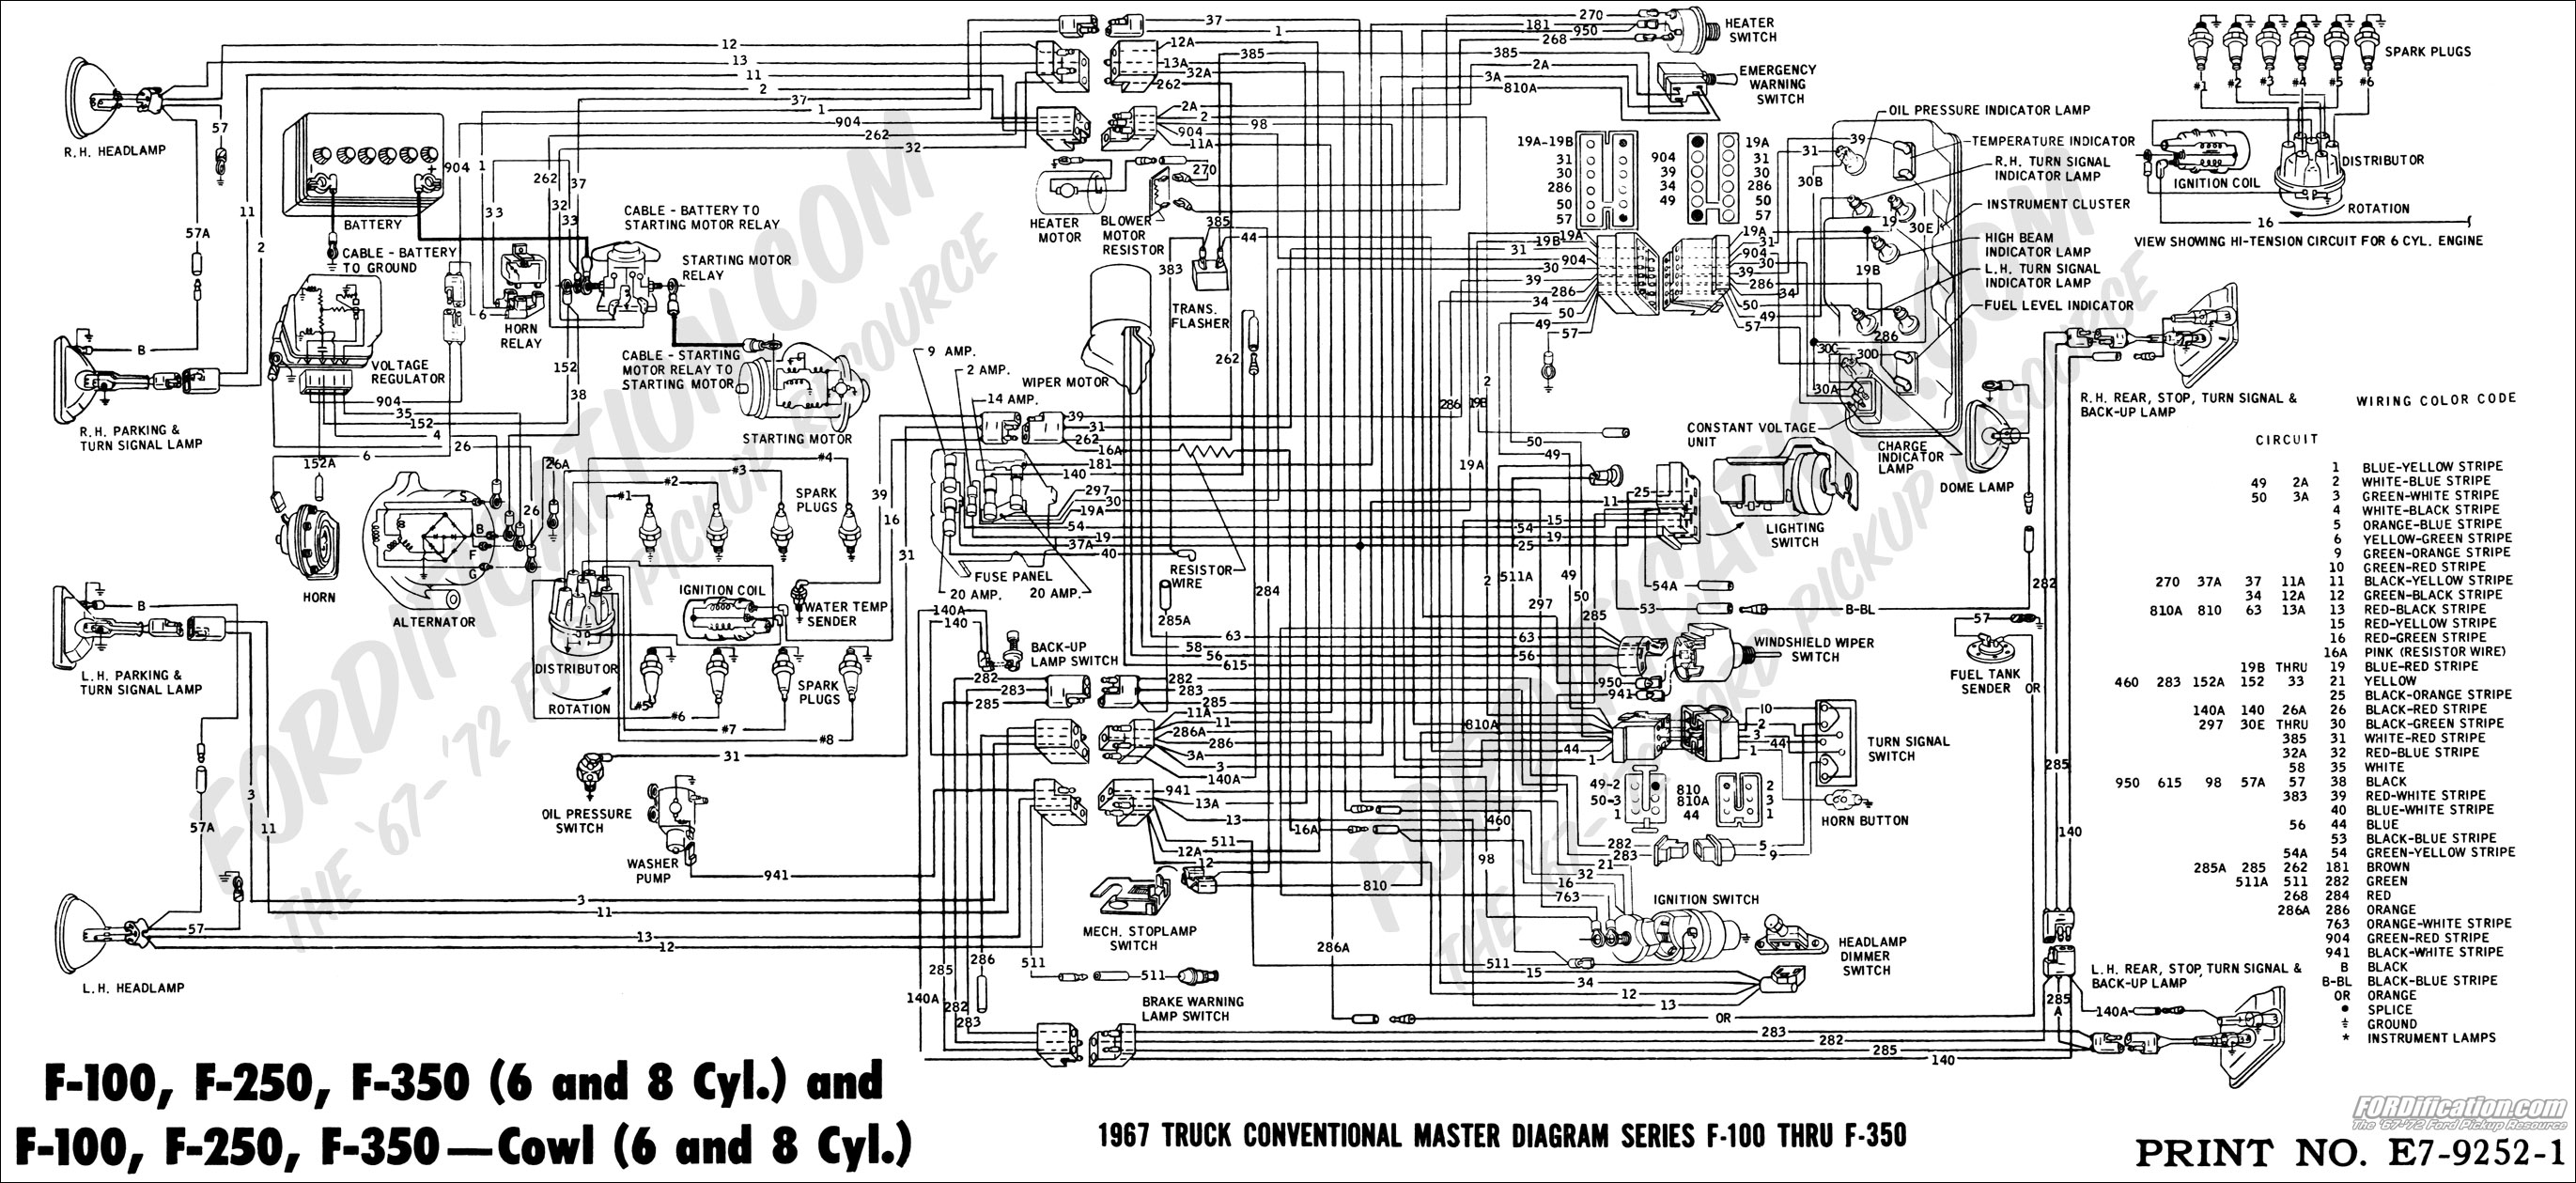 67masterdiagram ford truck technical drawings and schematics section h wiring 2012 ford e350 wiring diagram at bakdesigns.co